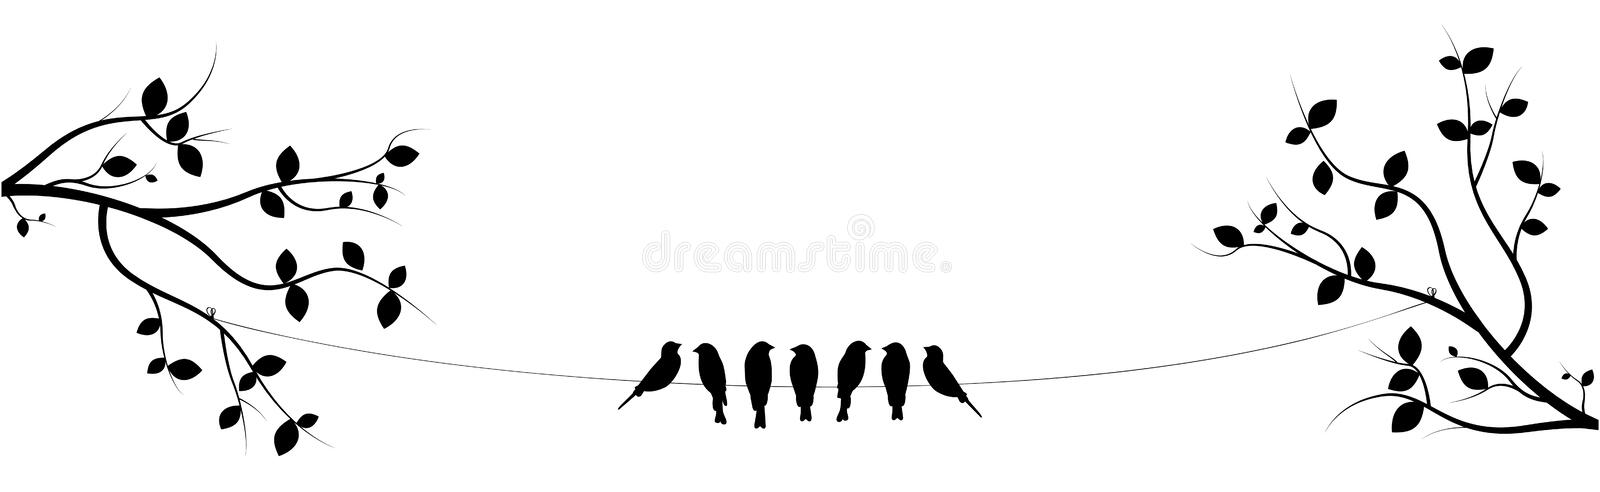 Birds On Wire on two branches Vector, Poster design, Wall Decor, Birds Silhouettes. Seven Birds on Wire Illustration Design vector illustration